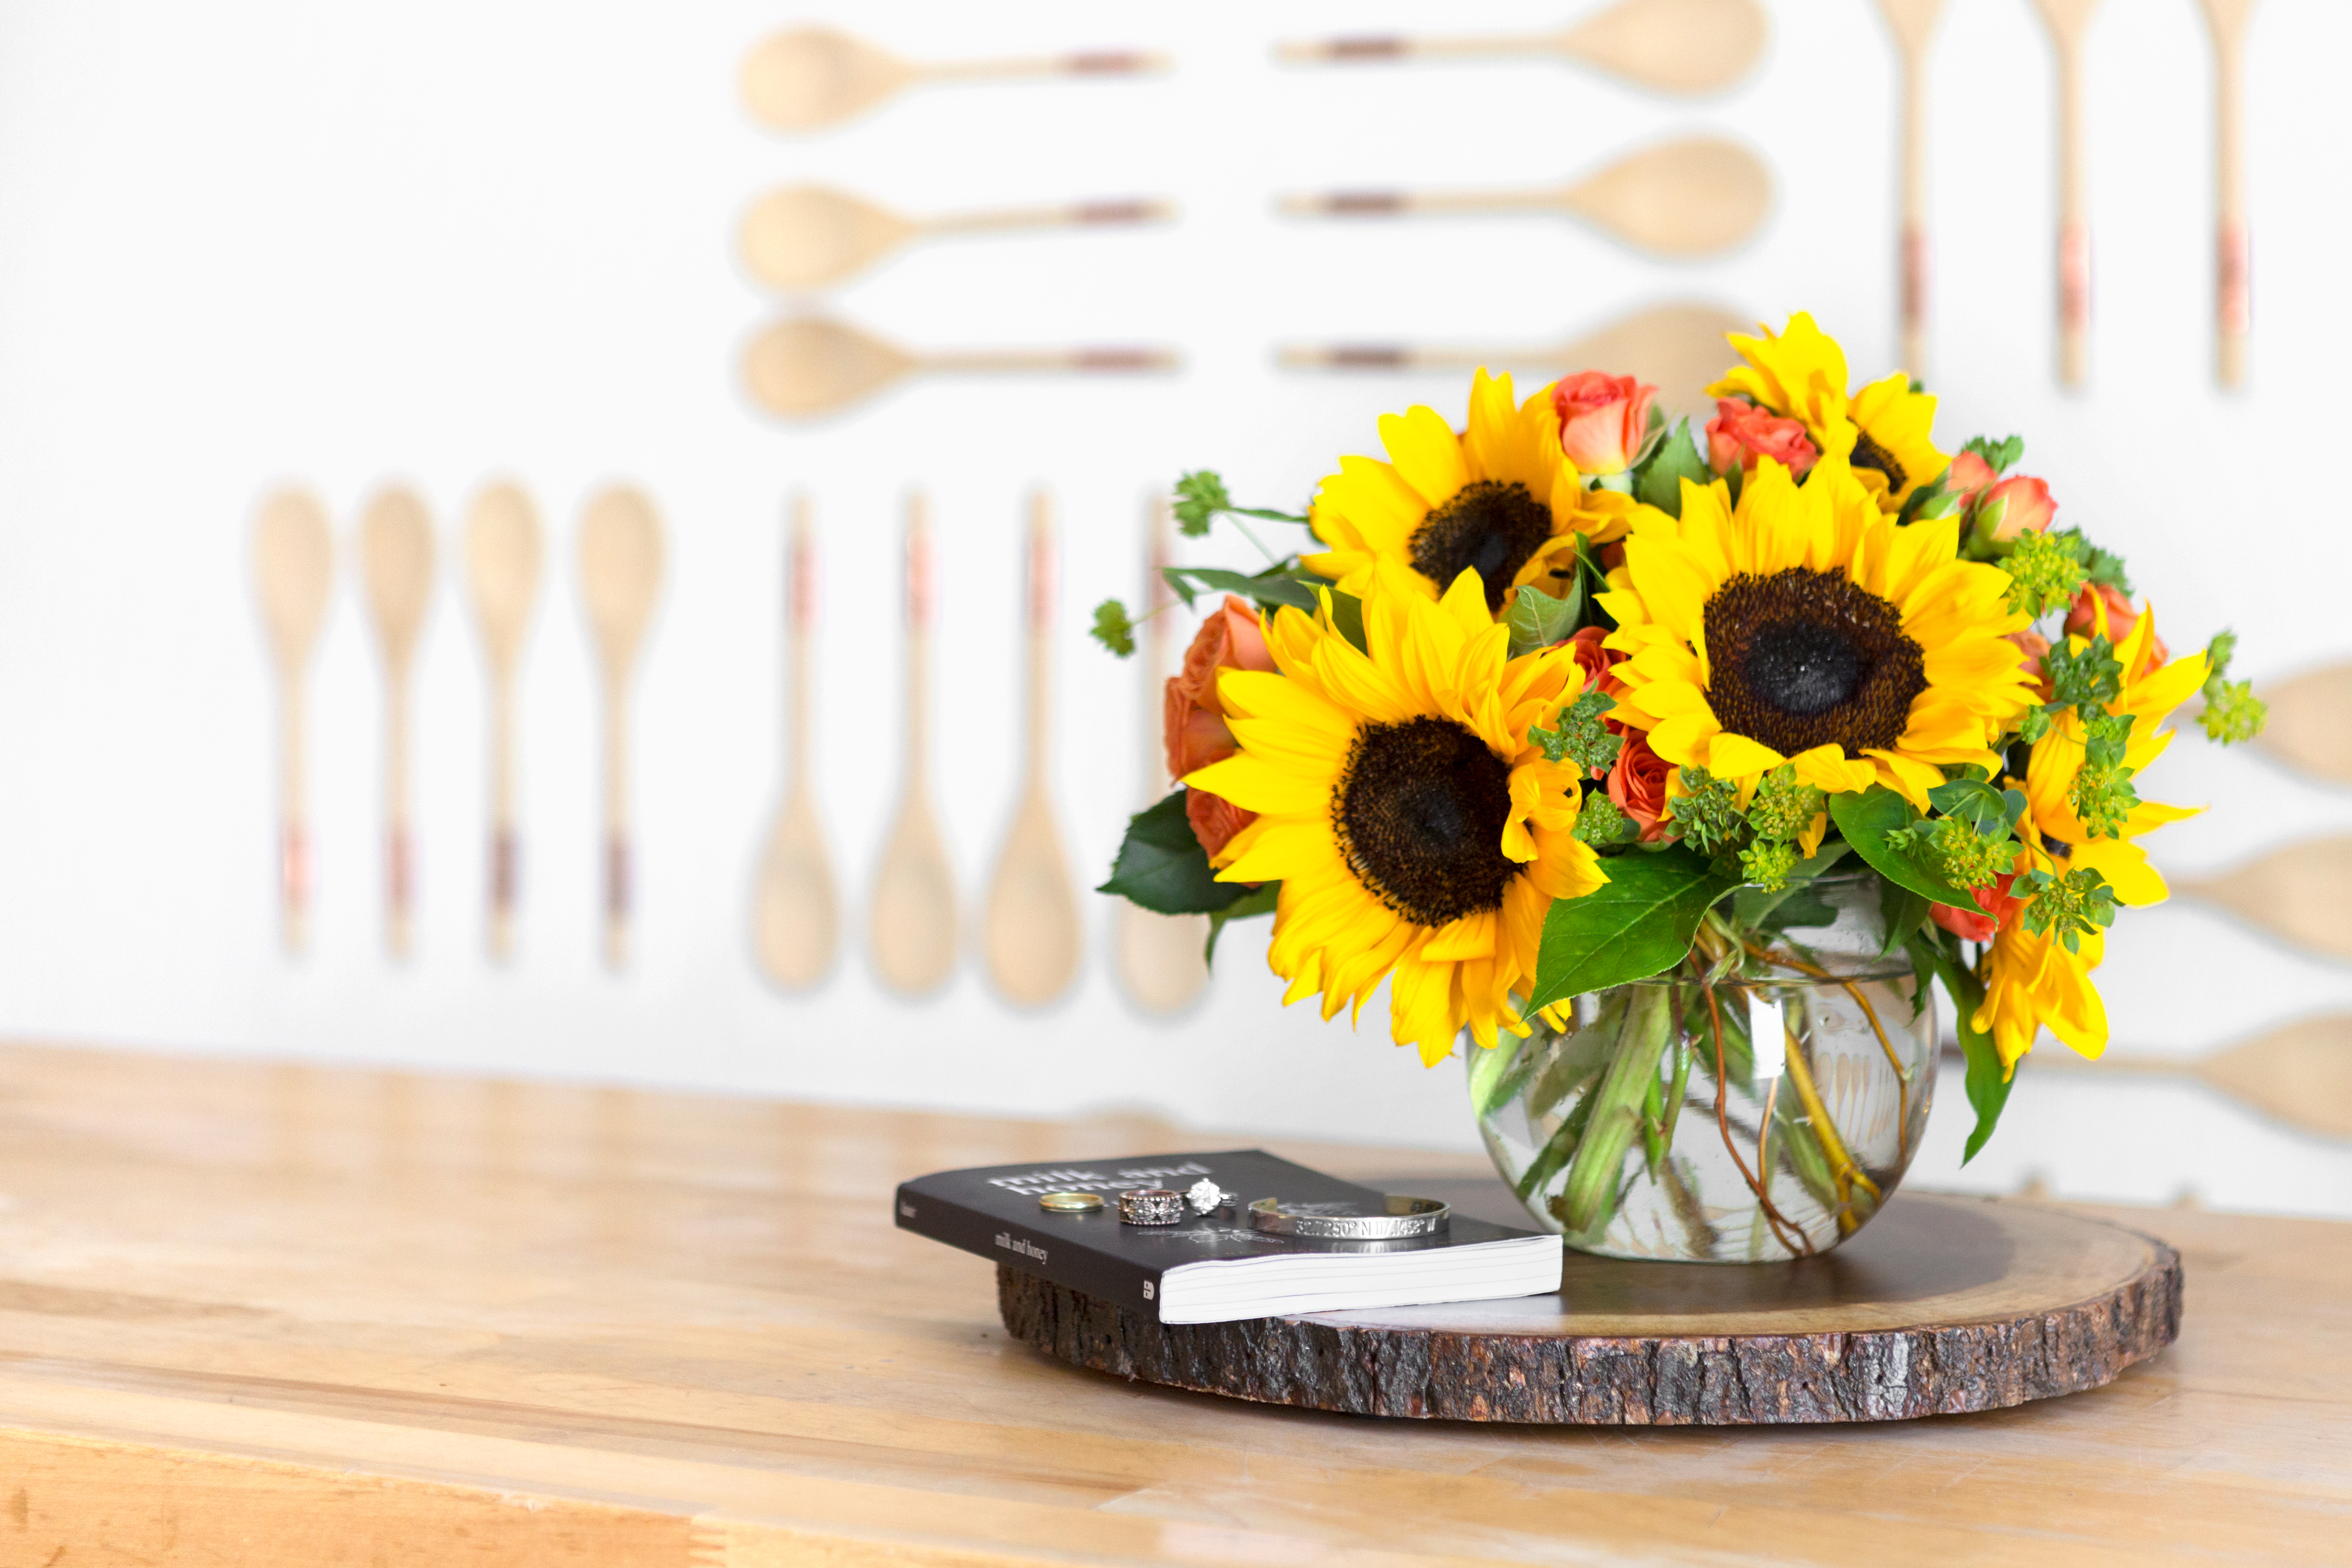 How To Make Your Own Flower Arrangements At Home